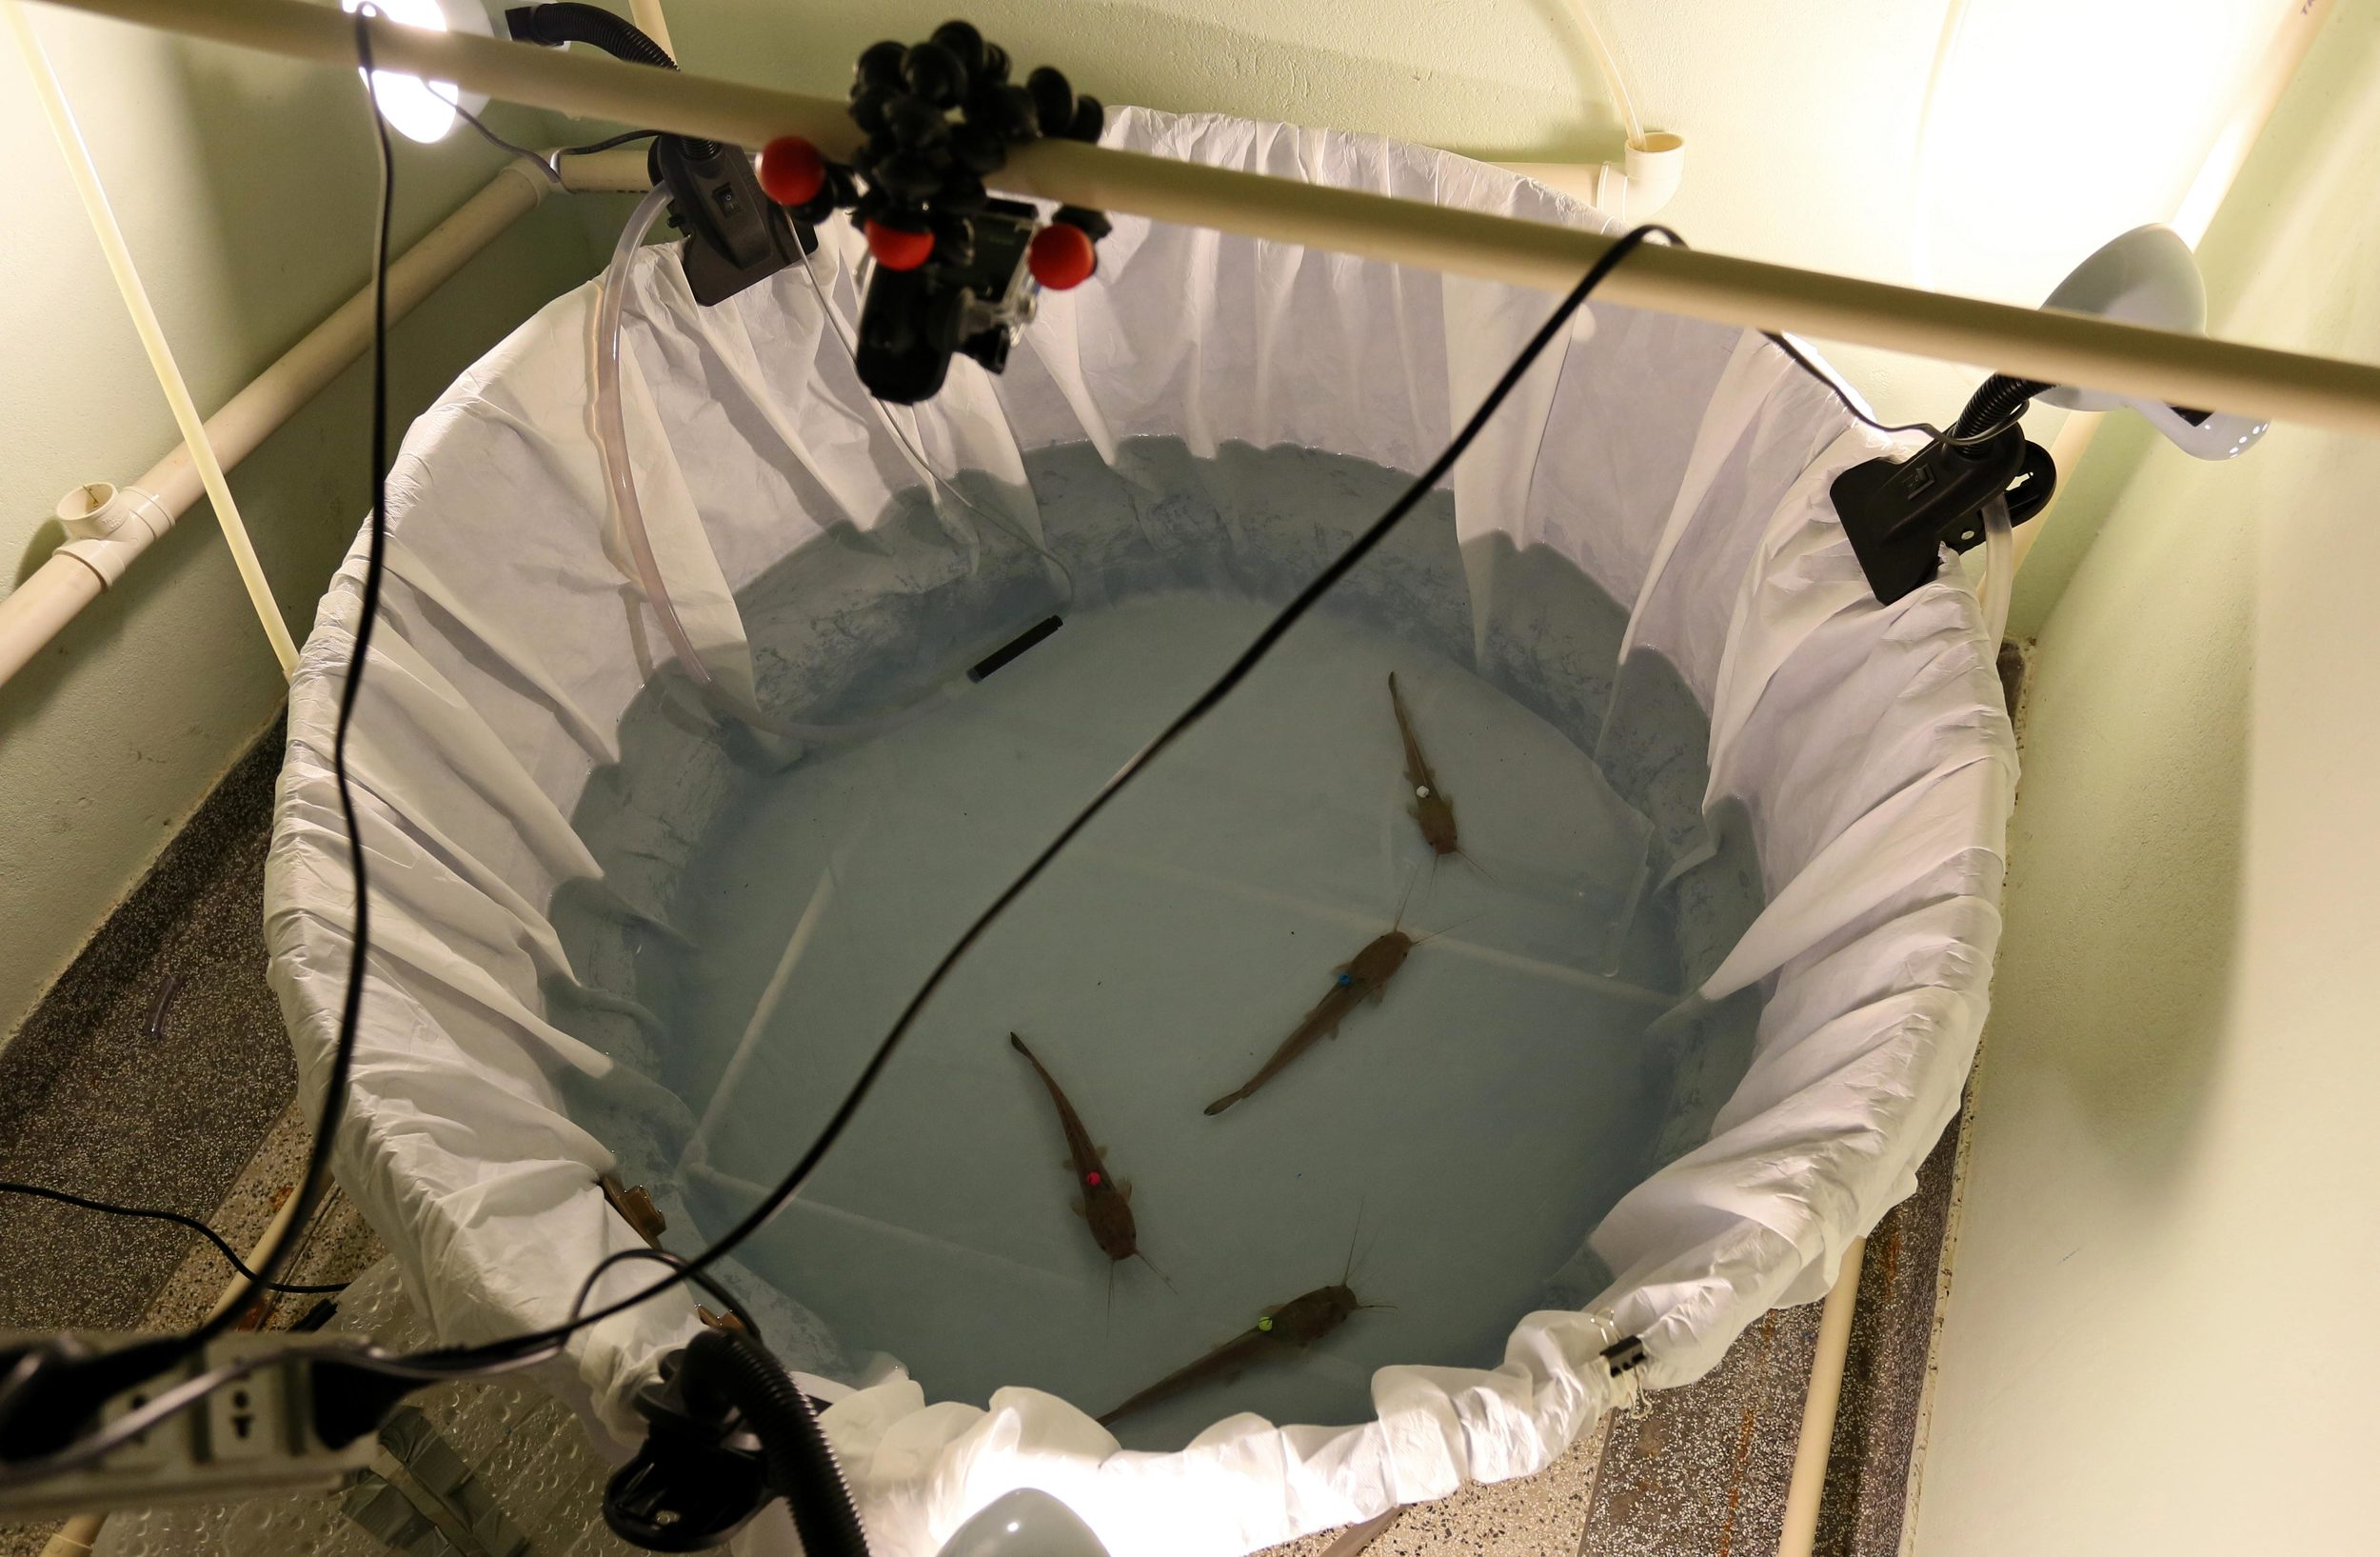 The arena used to study air-breathing behaviour in groups of catfish. The tank was originally blue, but we needed it to be white for the filming. Urine-proof bed sheets to the rescue!